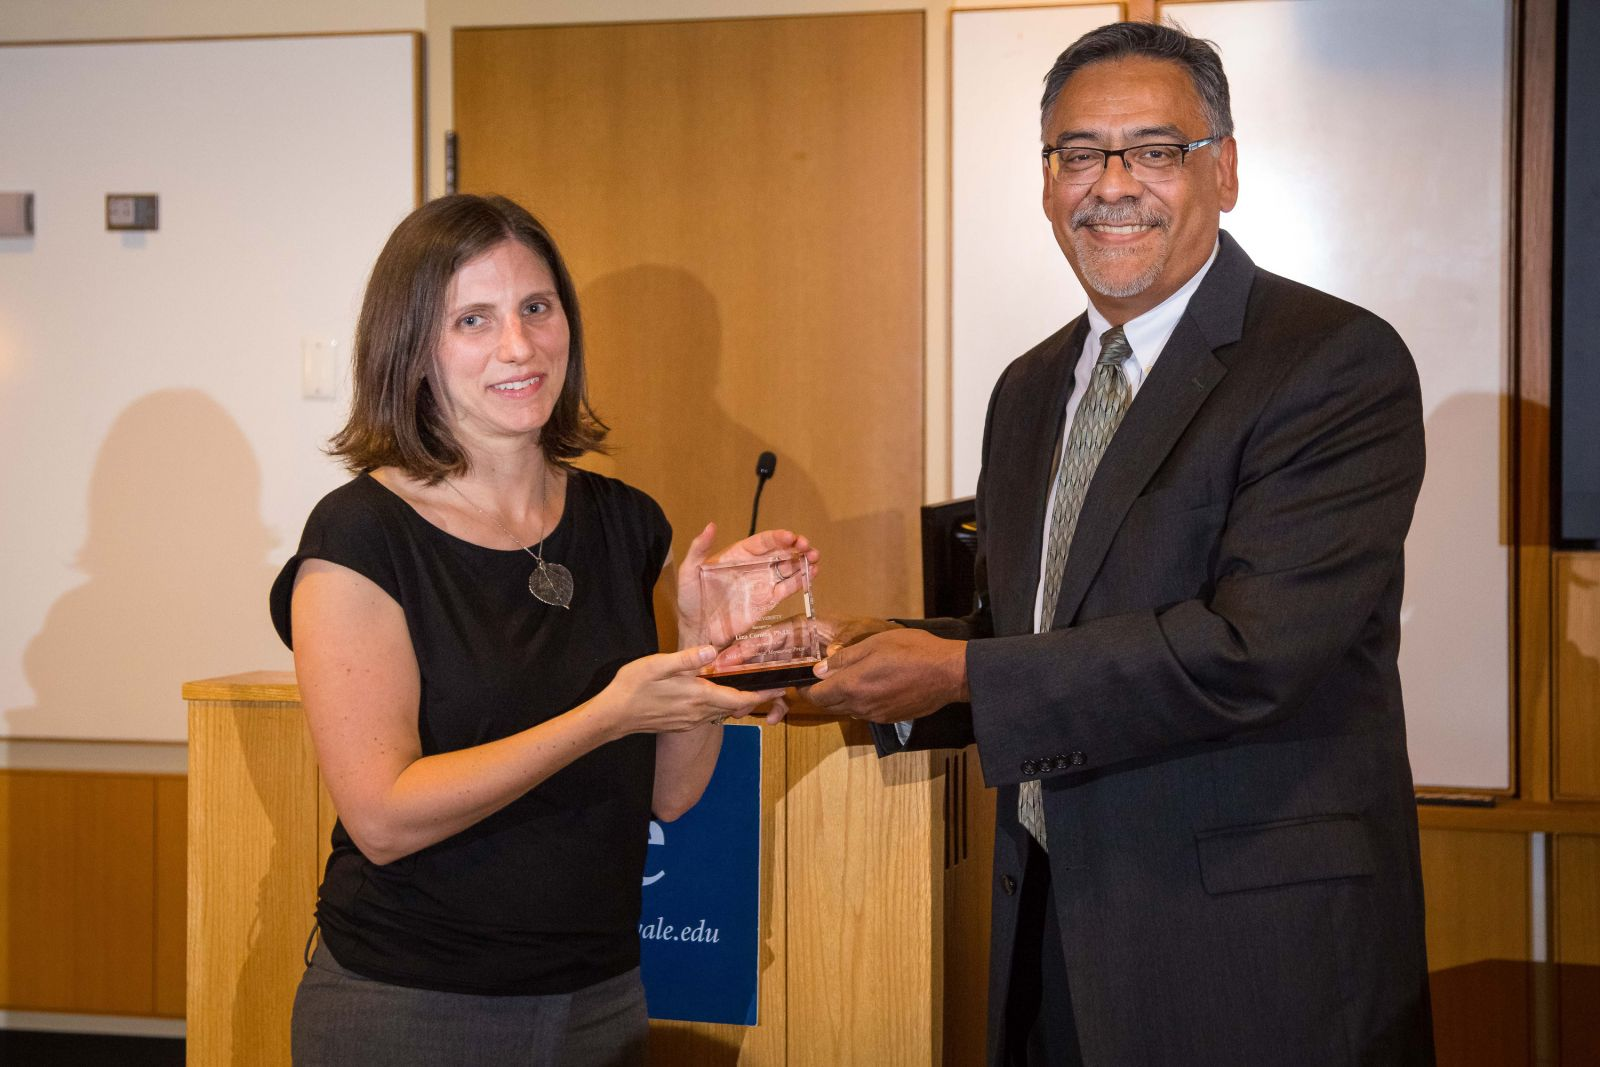 Rick Bribiescas, Deputy Provost for Faculty Development and Diversity, presents the 2016 Mentor of the Year plaque to Liza Comita, Assistant Professor of Forestry and Environmental Studies.